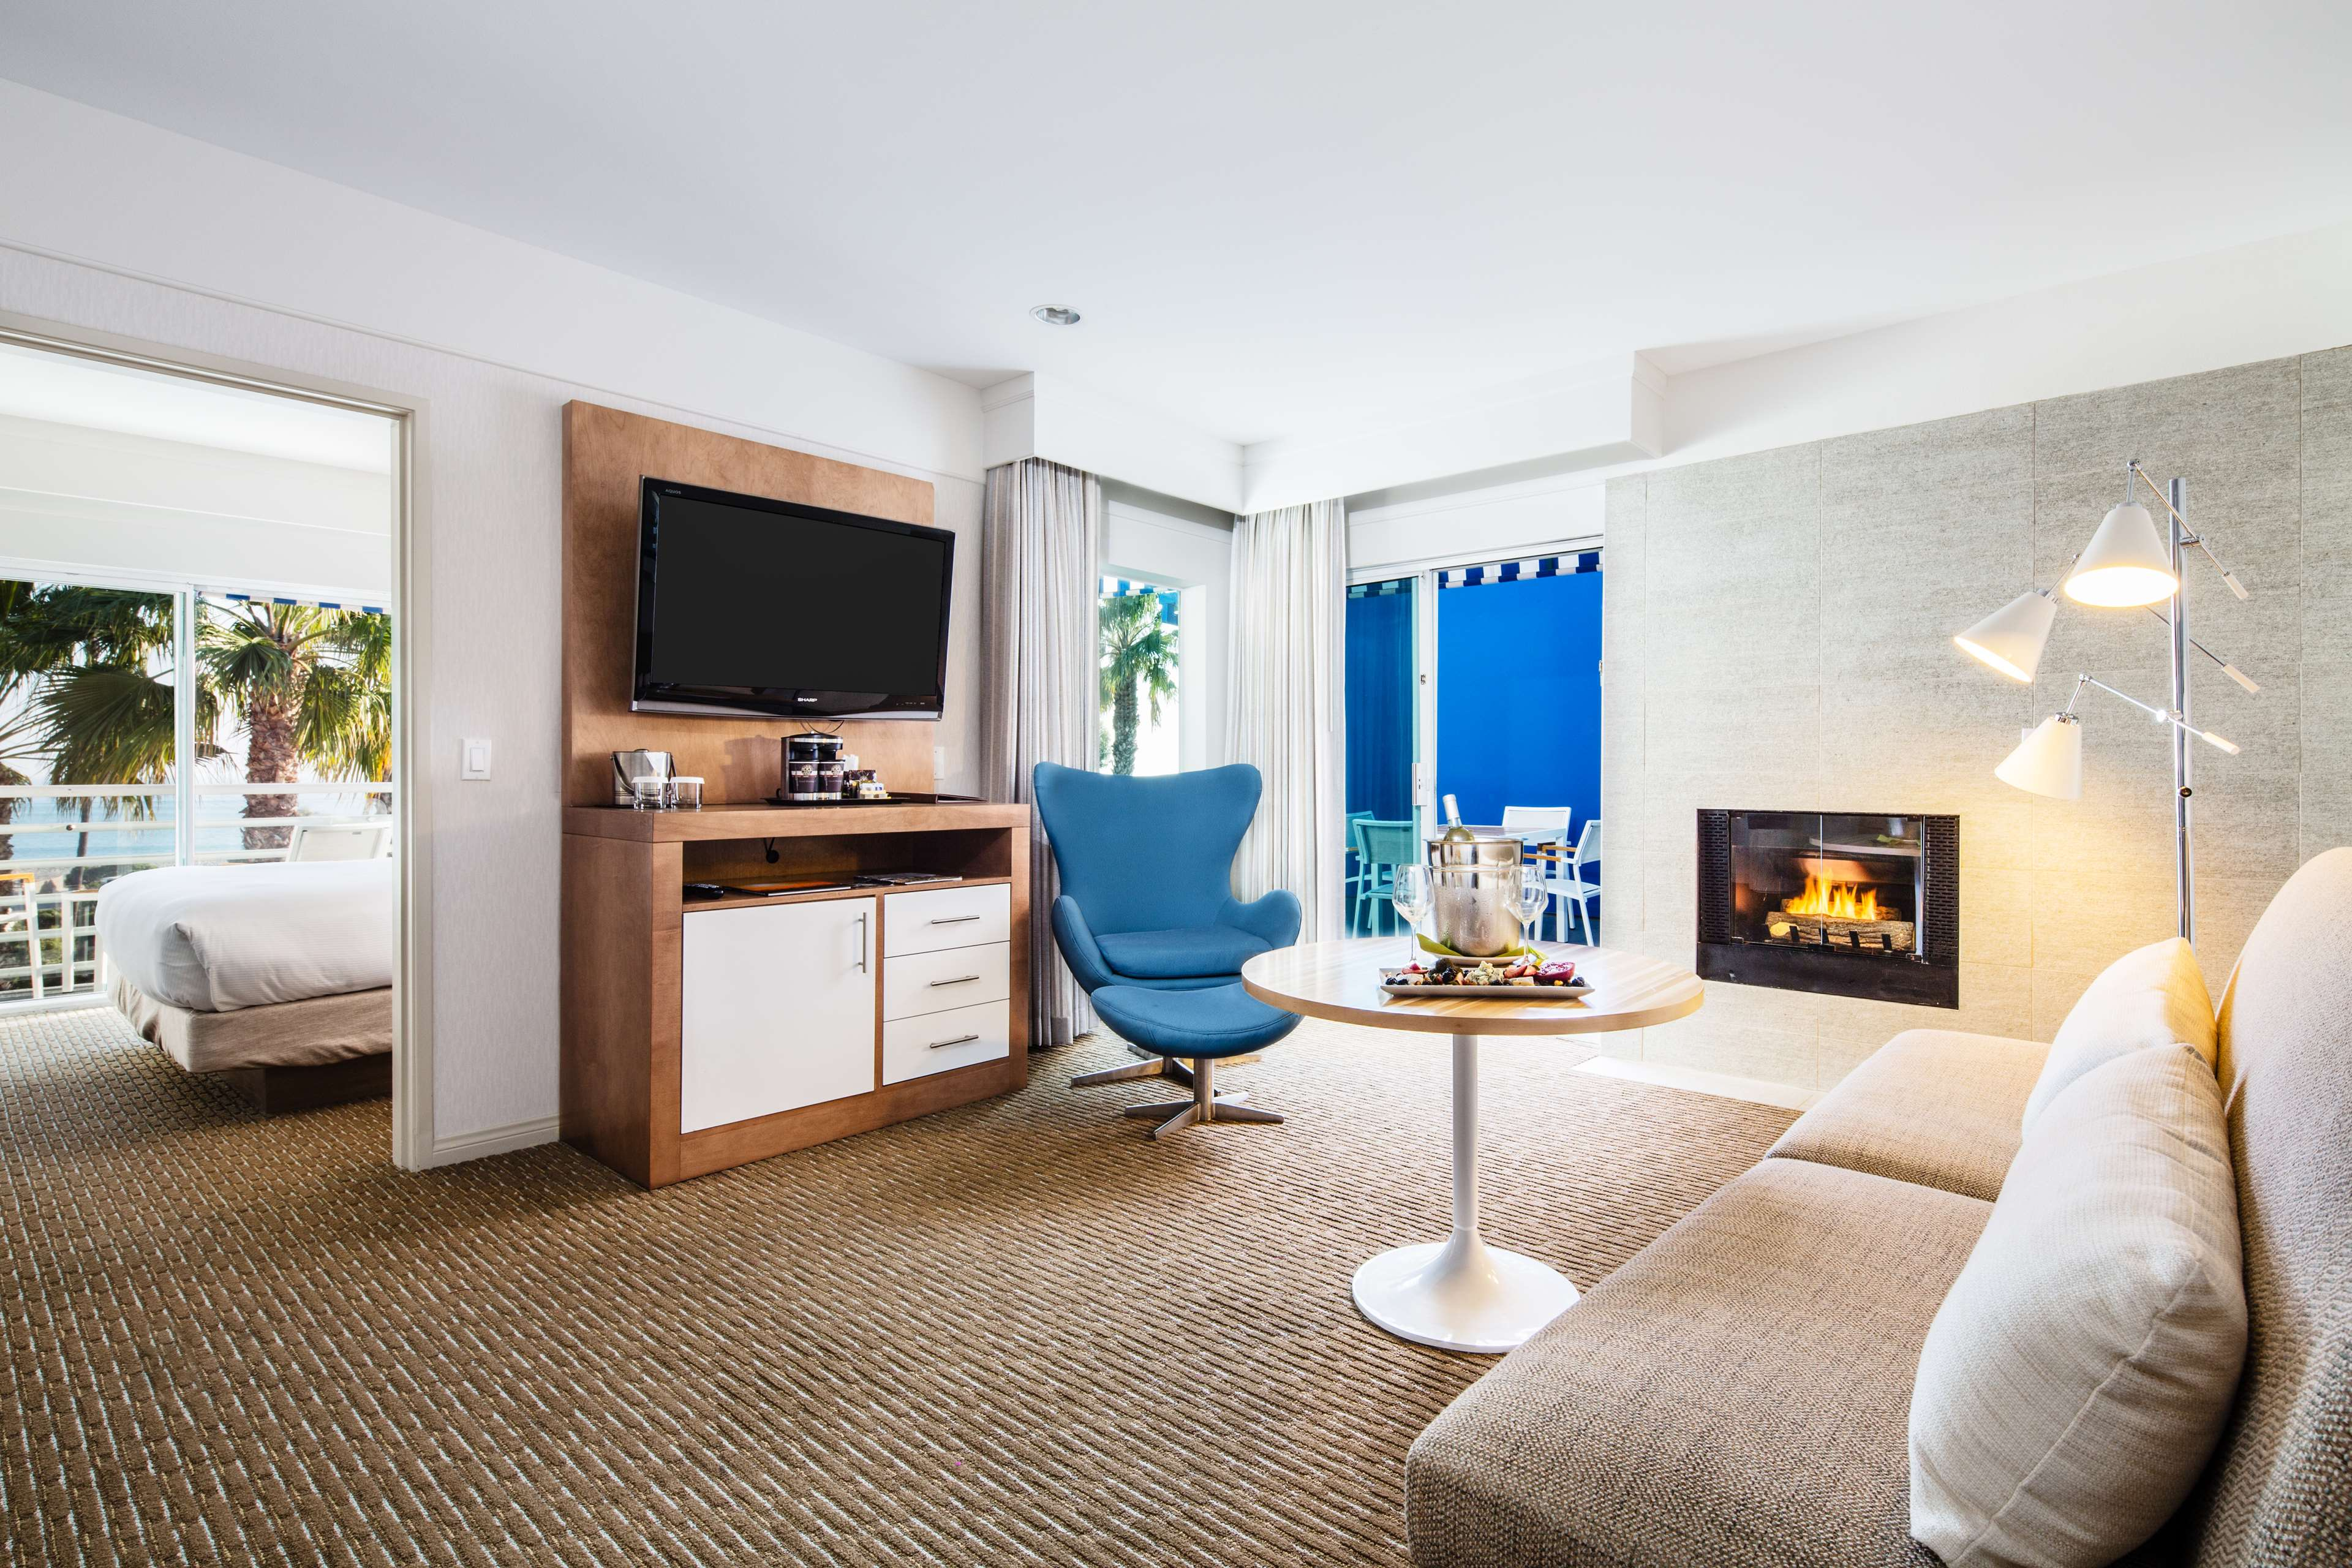 DoubleTree Suites by Hilton Hotel Doheny Beach - Dana Point image 18